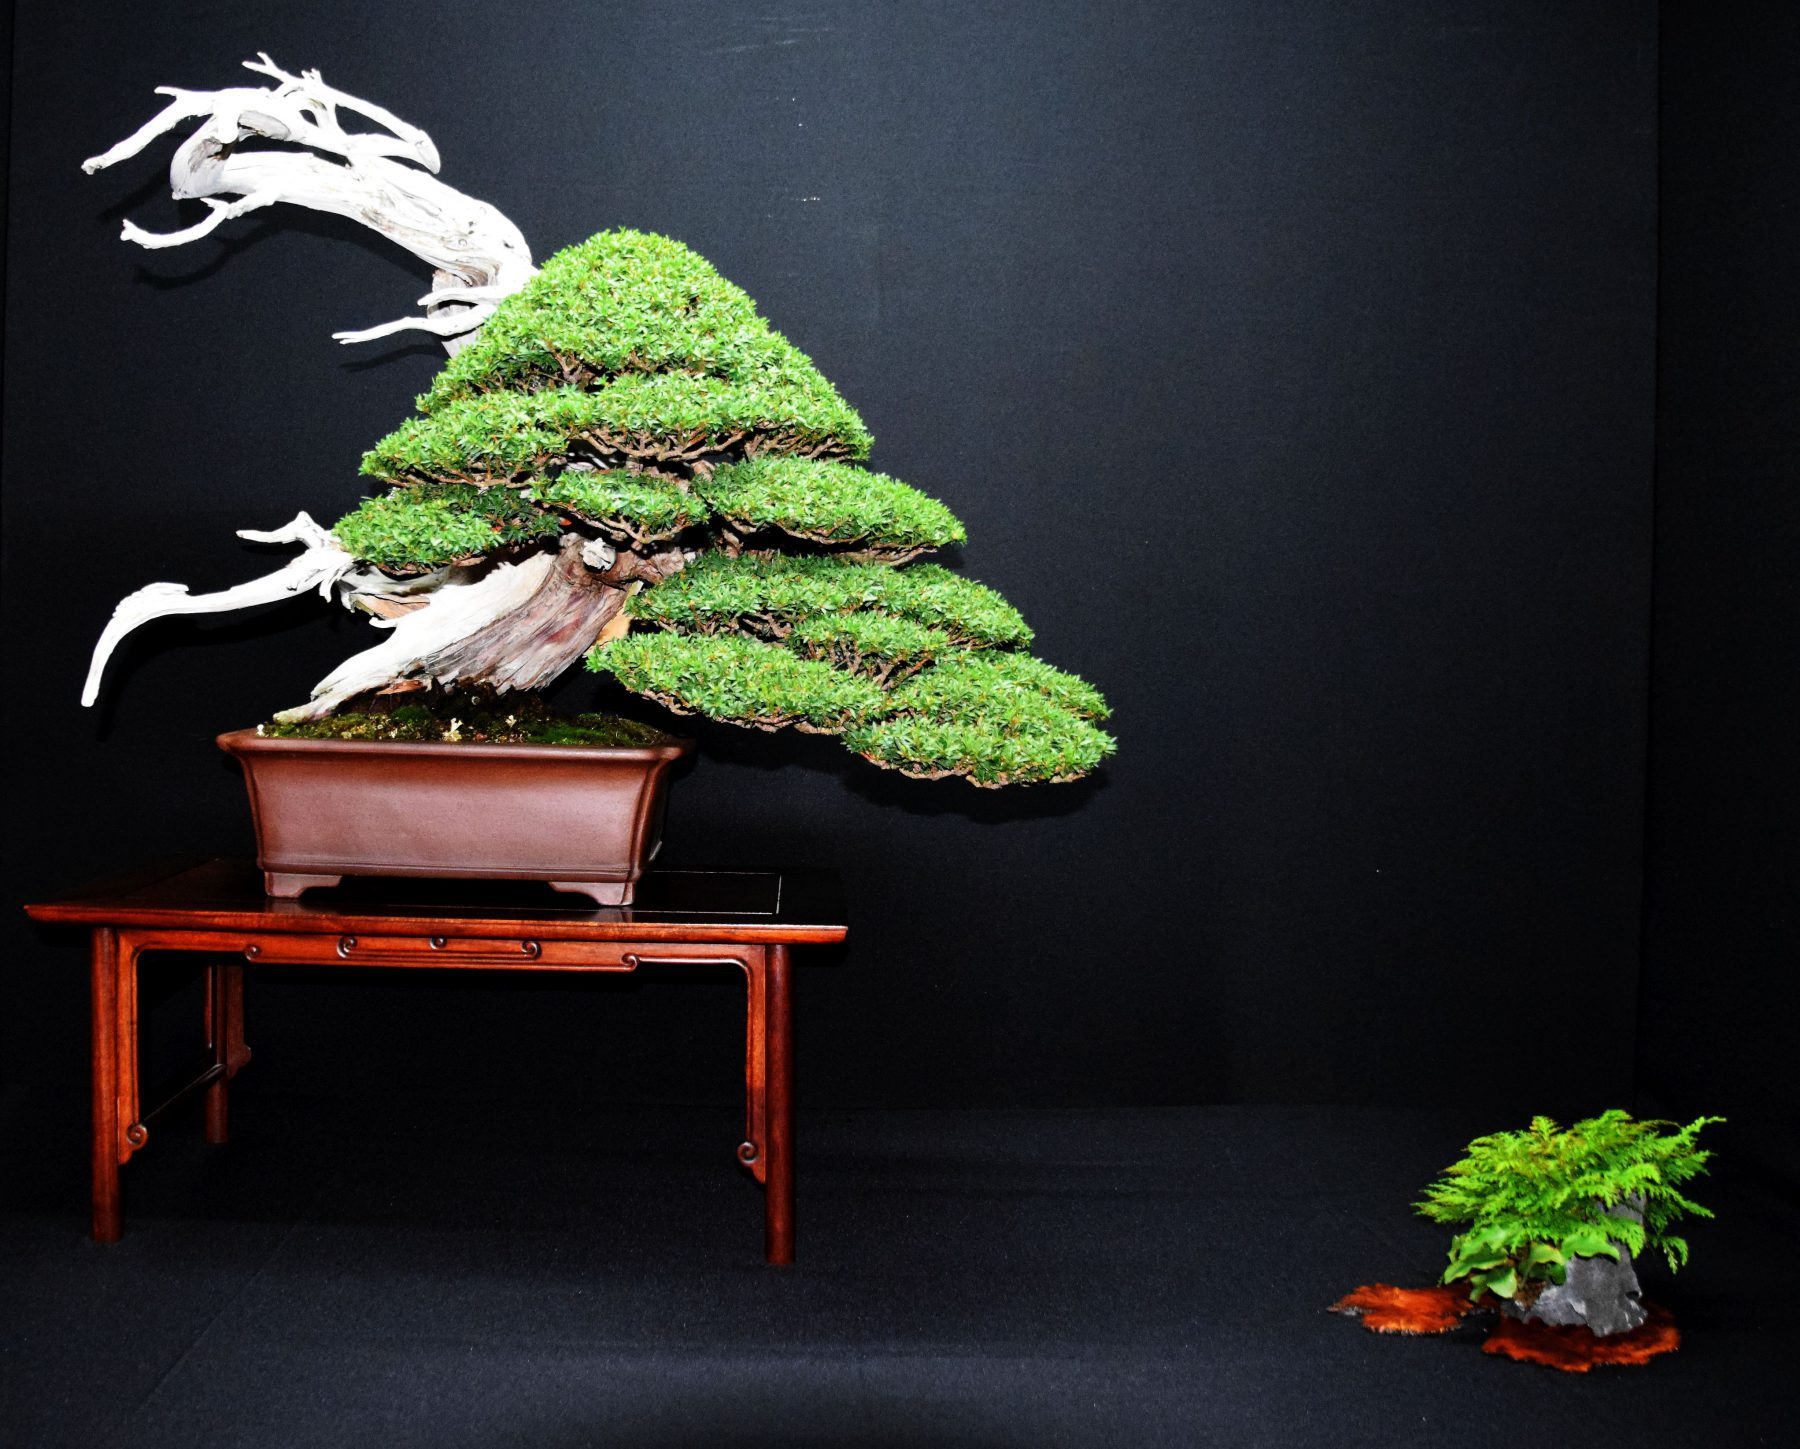 bonsai-museum-luis-vallejo-030